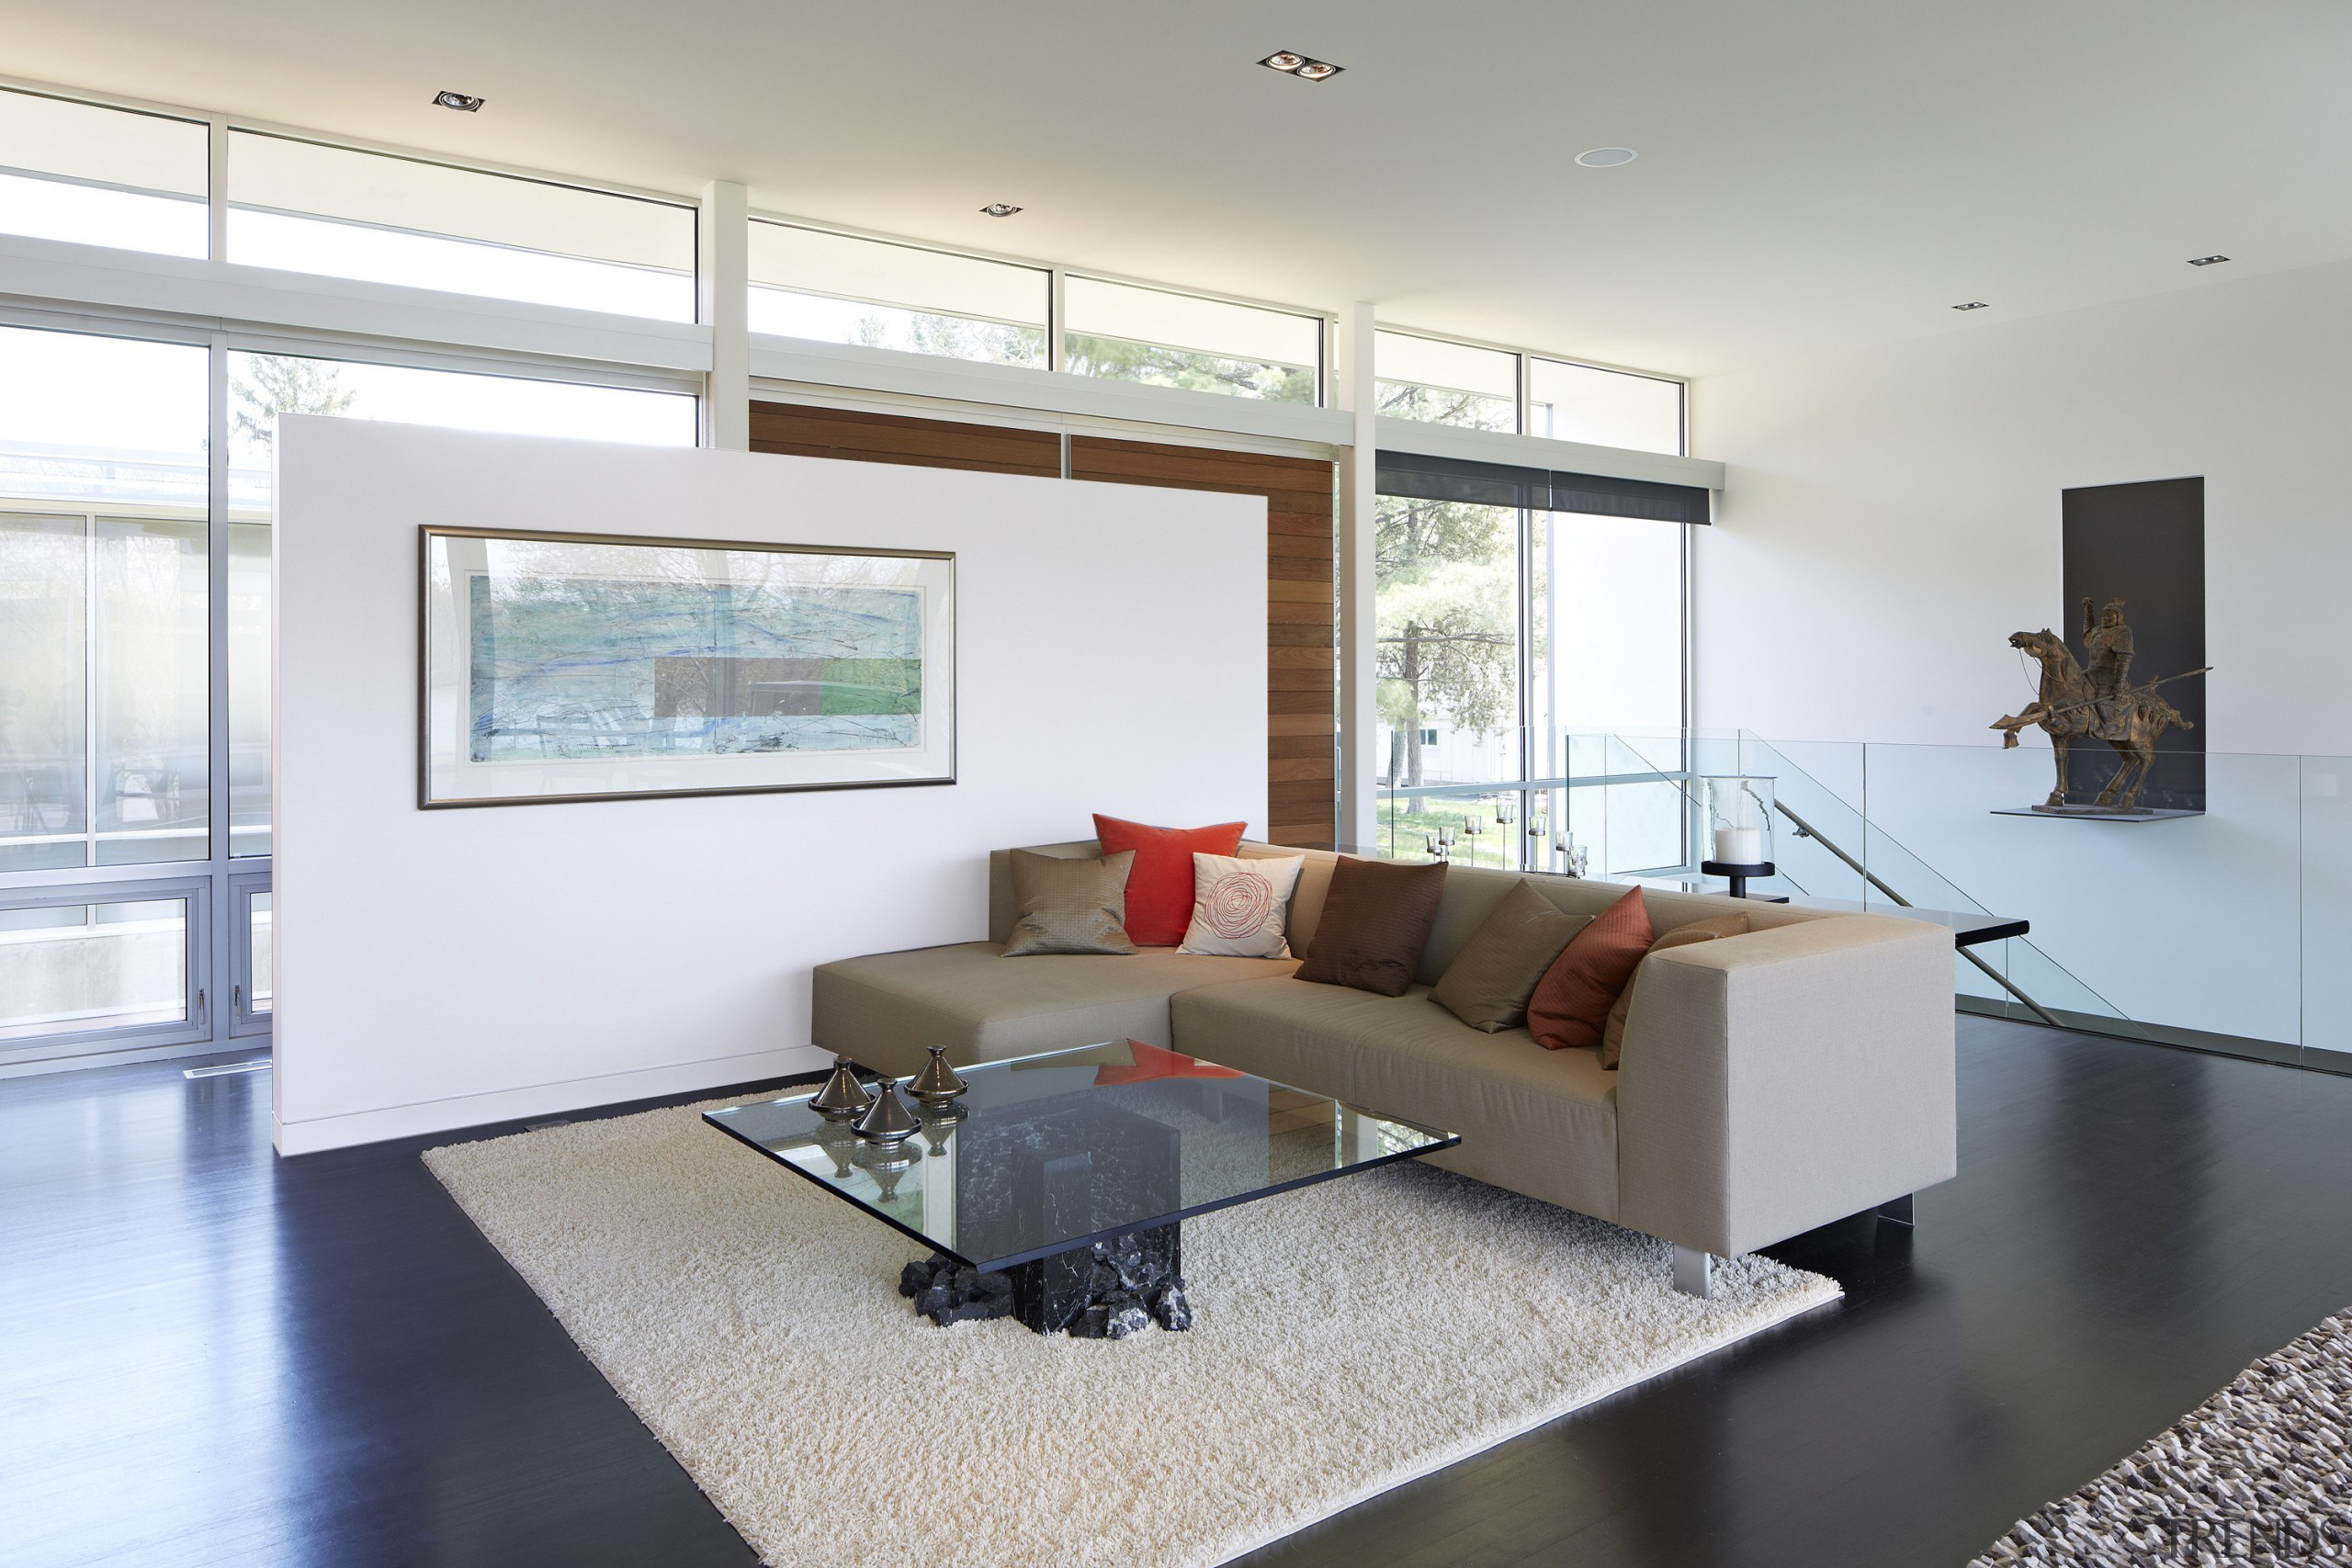 This open-plan living area is separated from the architecture, ceiling, daylighting, floor, flooring, house, interior design, living room, property, real estate, room, window, white, gray